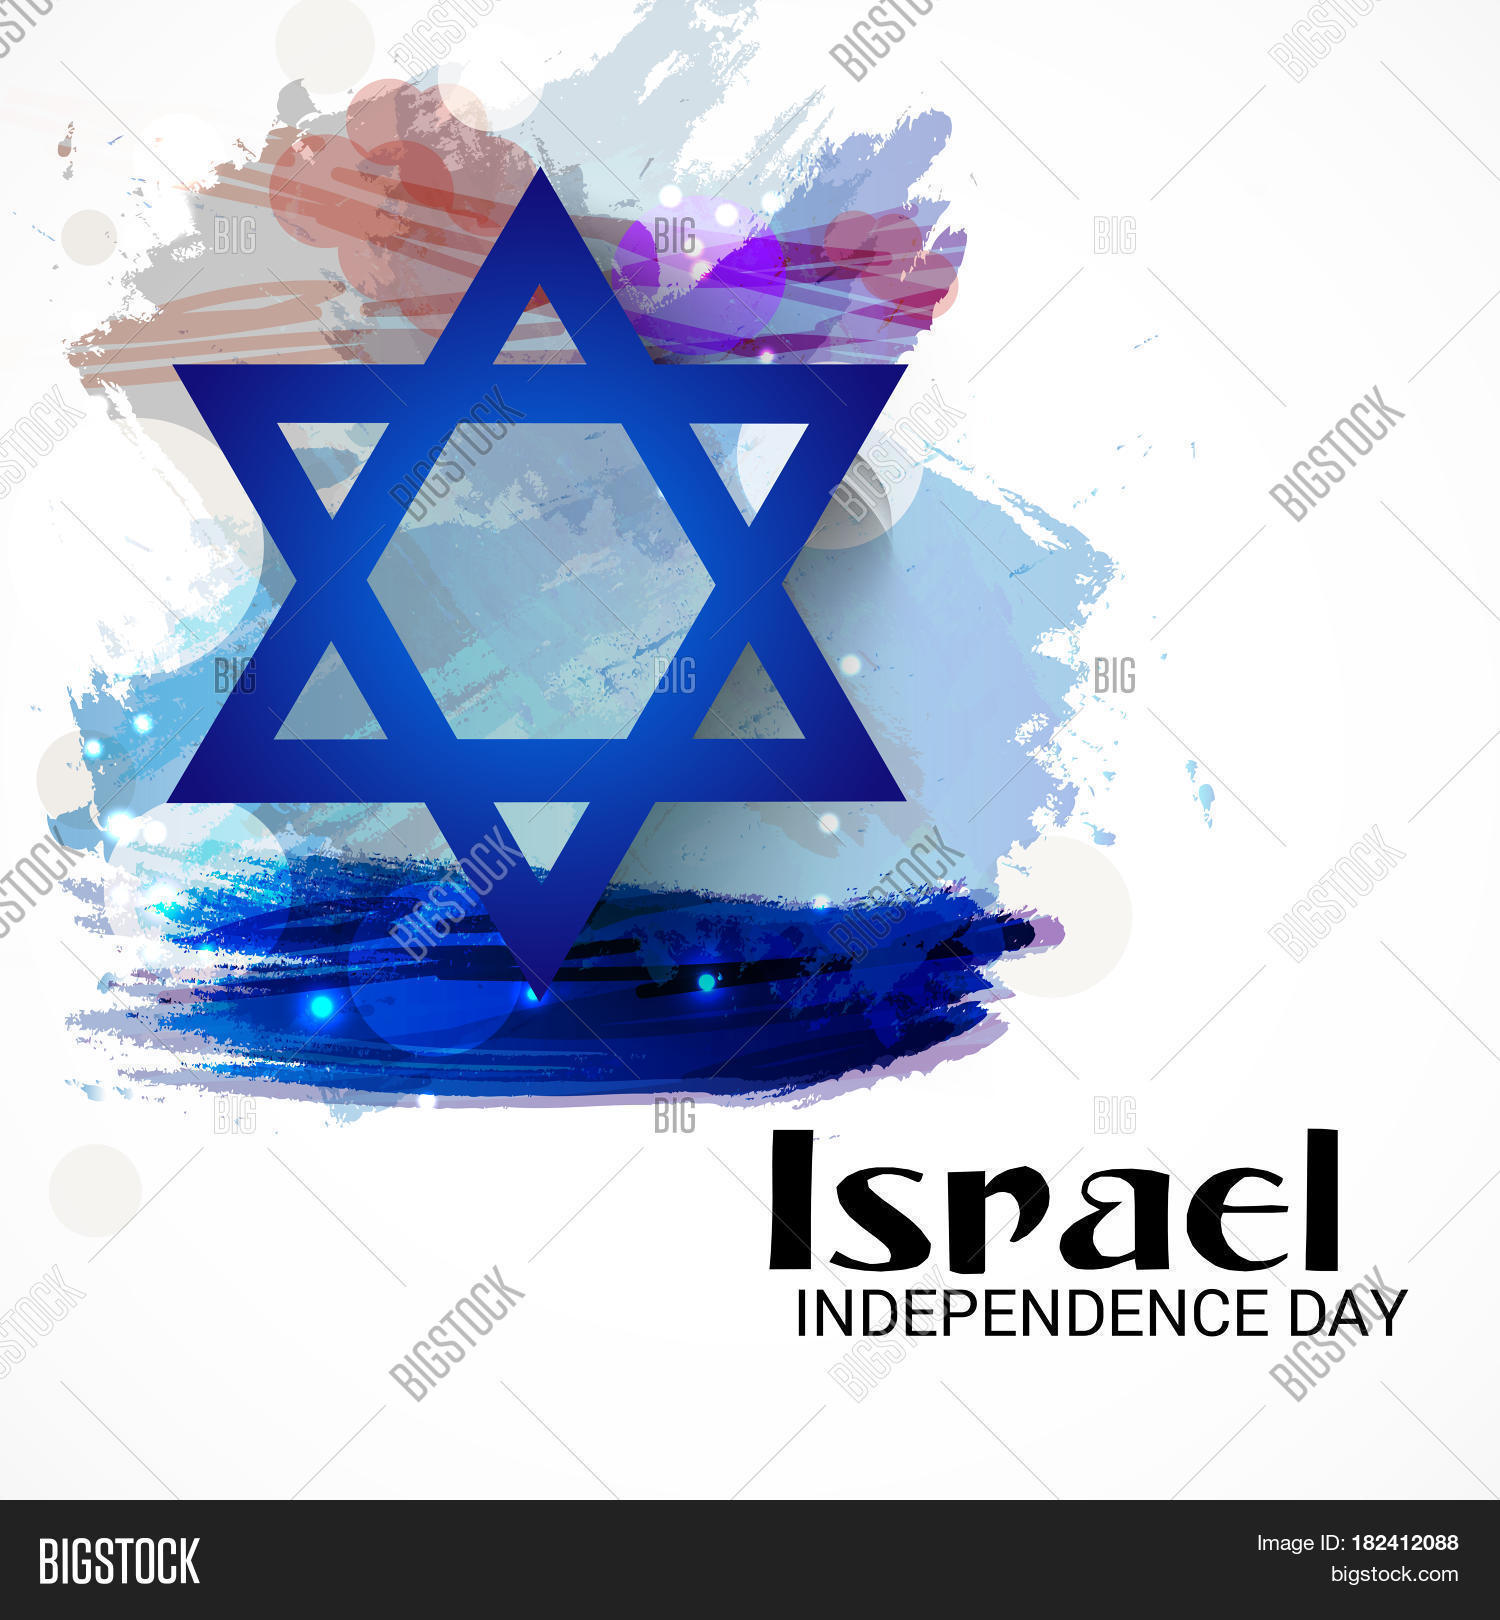 Israel Independence Day 19 April 94 Image Amp Photo